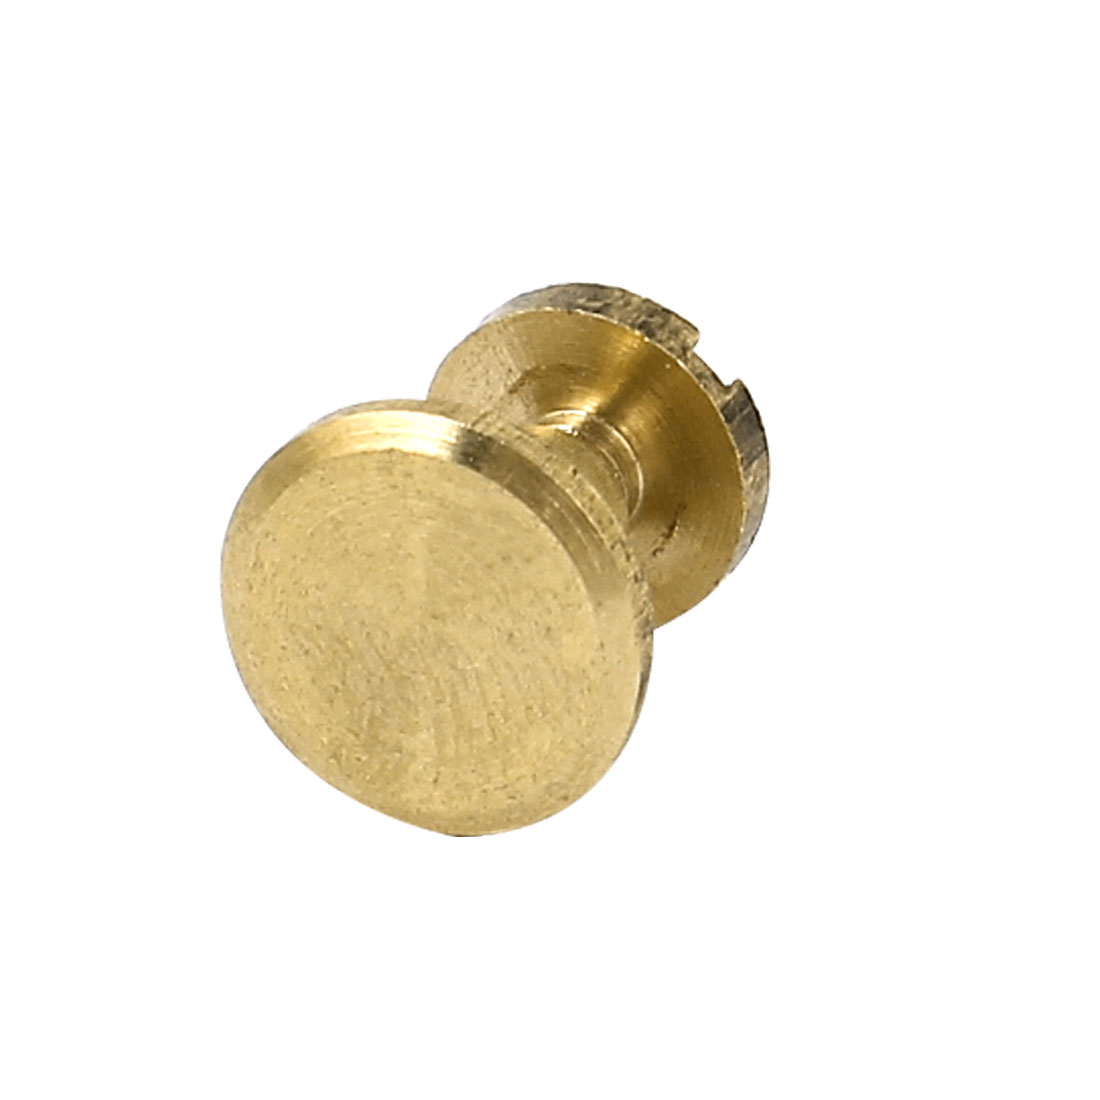 4mmx7mm Brass Plated Binding Screw Post for Leather Purse Belt